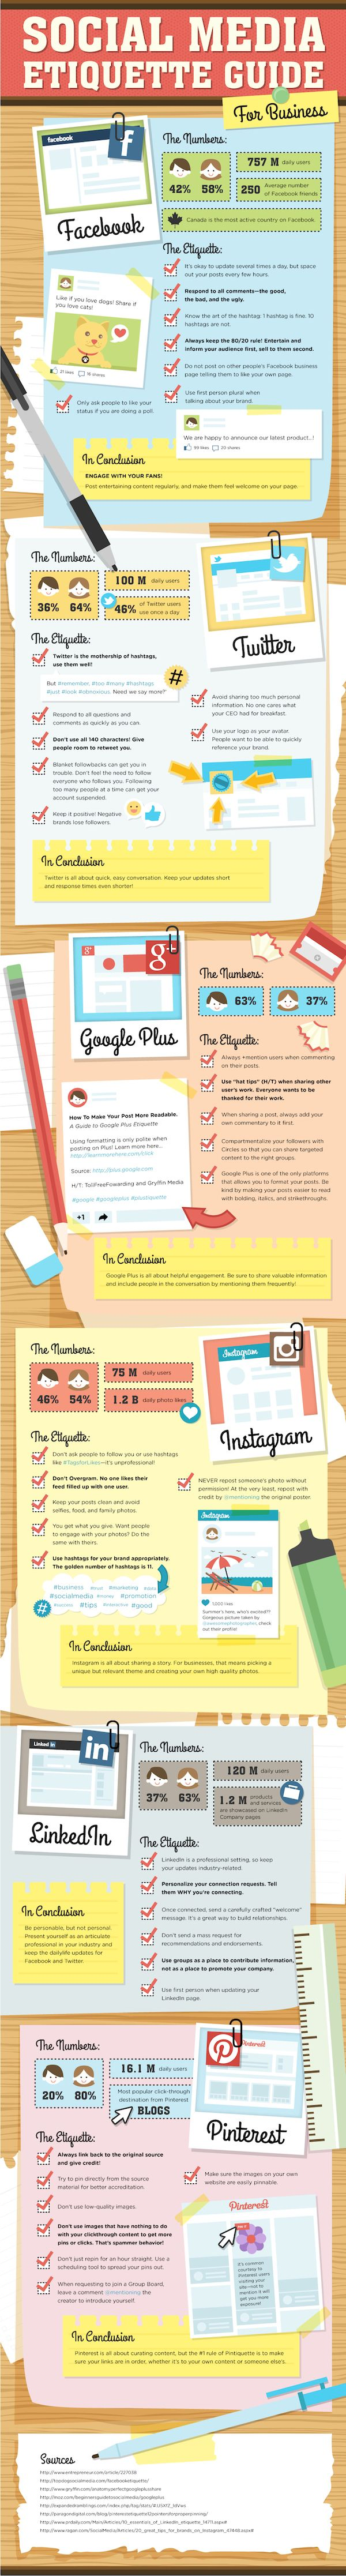 "SOCIAL MEDIA - ""A Social Media Etiquette Guide You Might Find Useful"". For Business.  #j360"